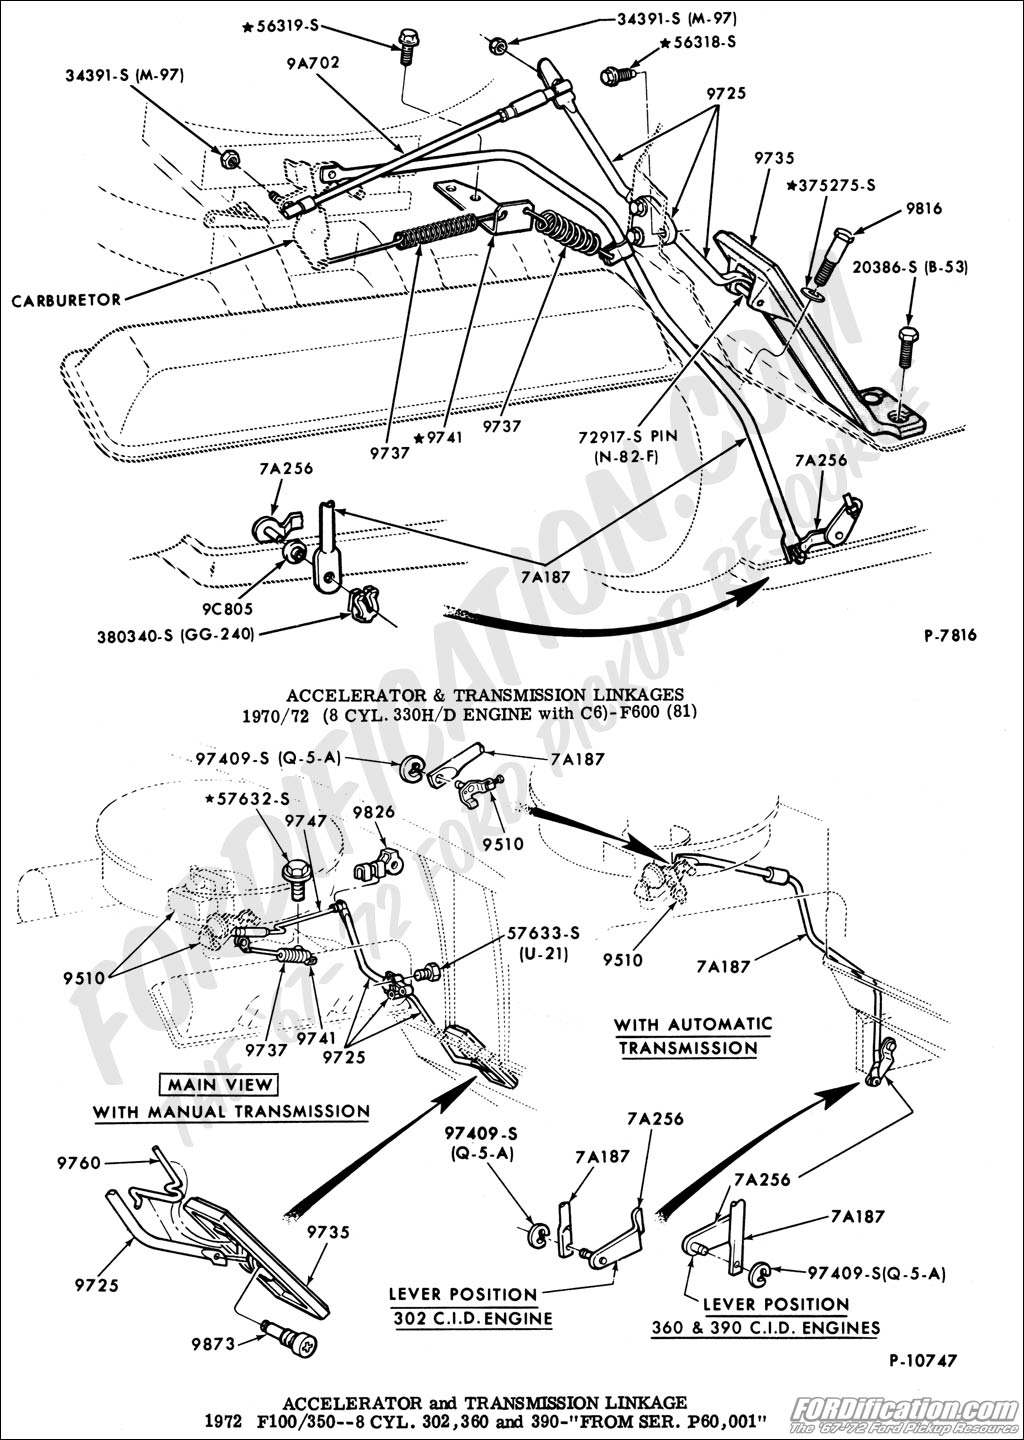 Throttle Linkage And Kick Down Linkage For F100 360 2